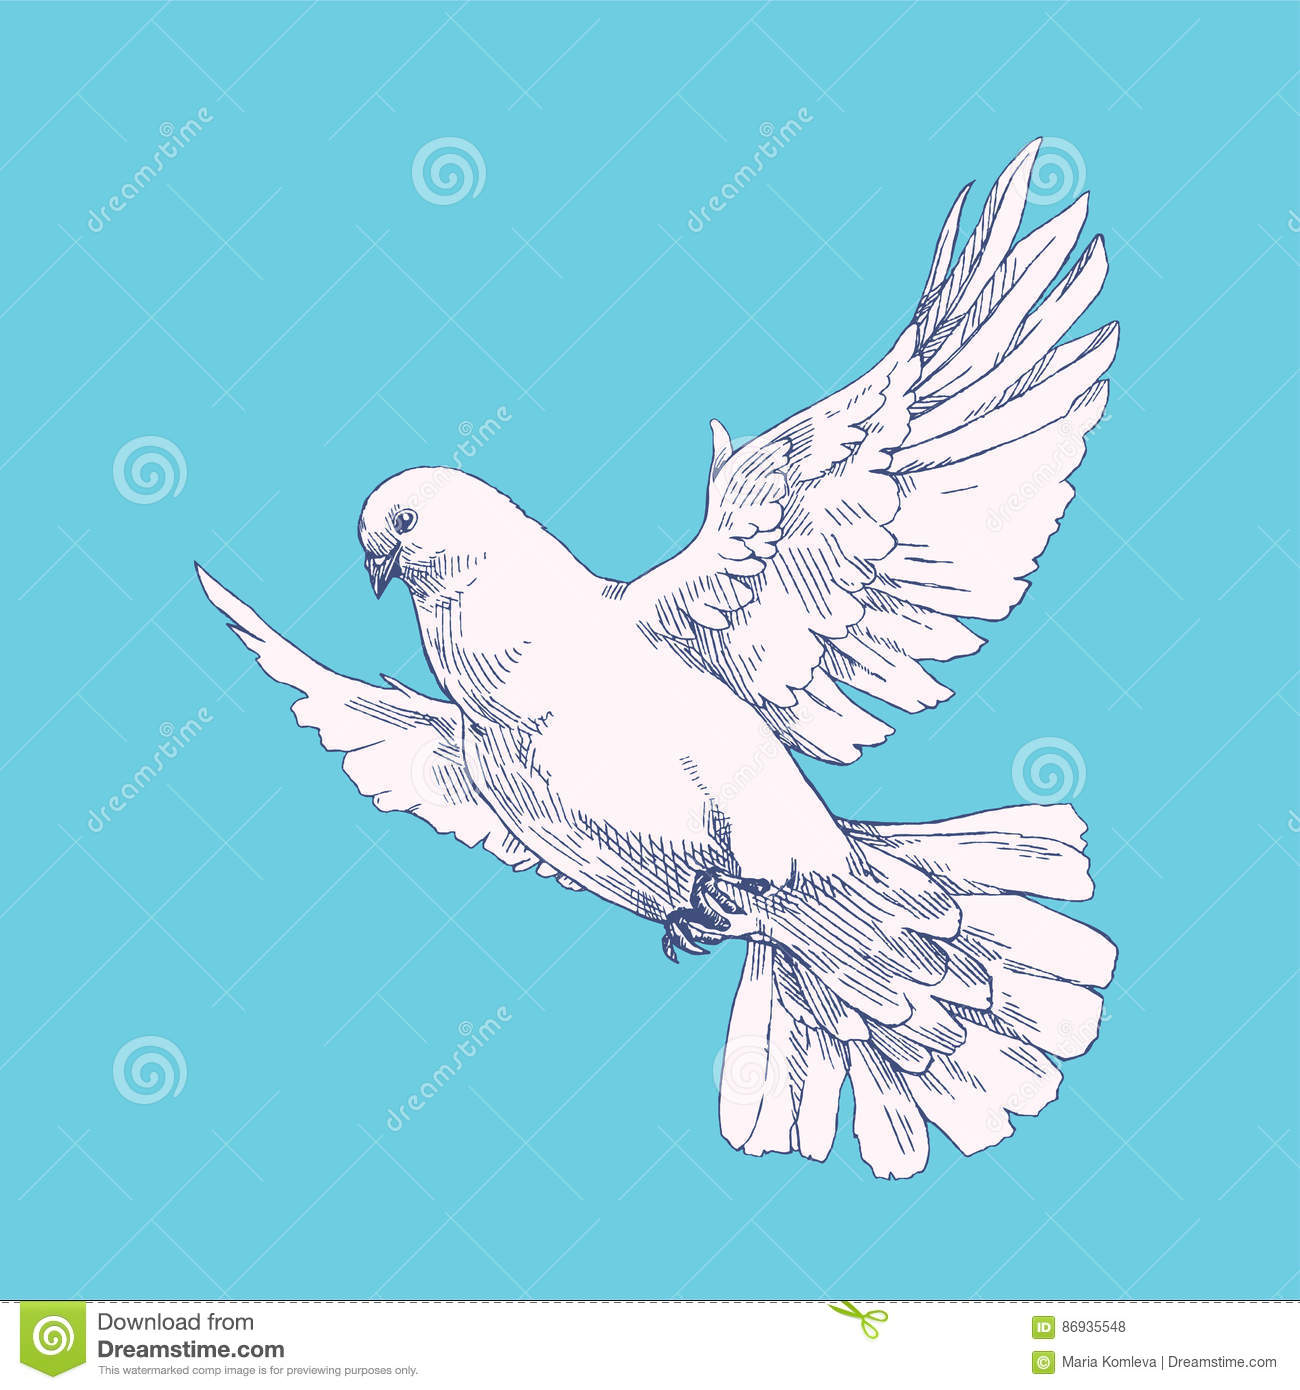 Pigeon illustration - photo#36